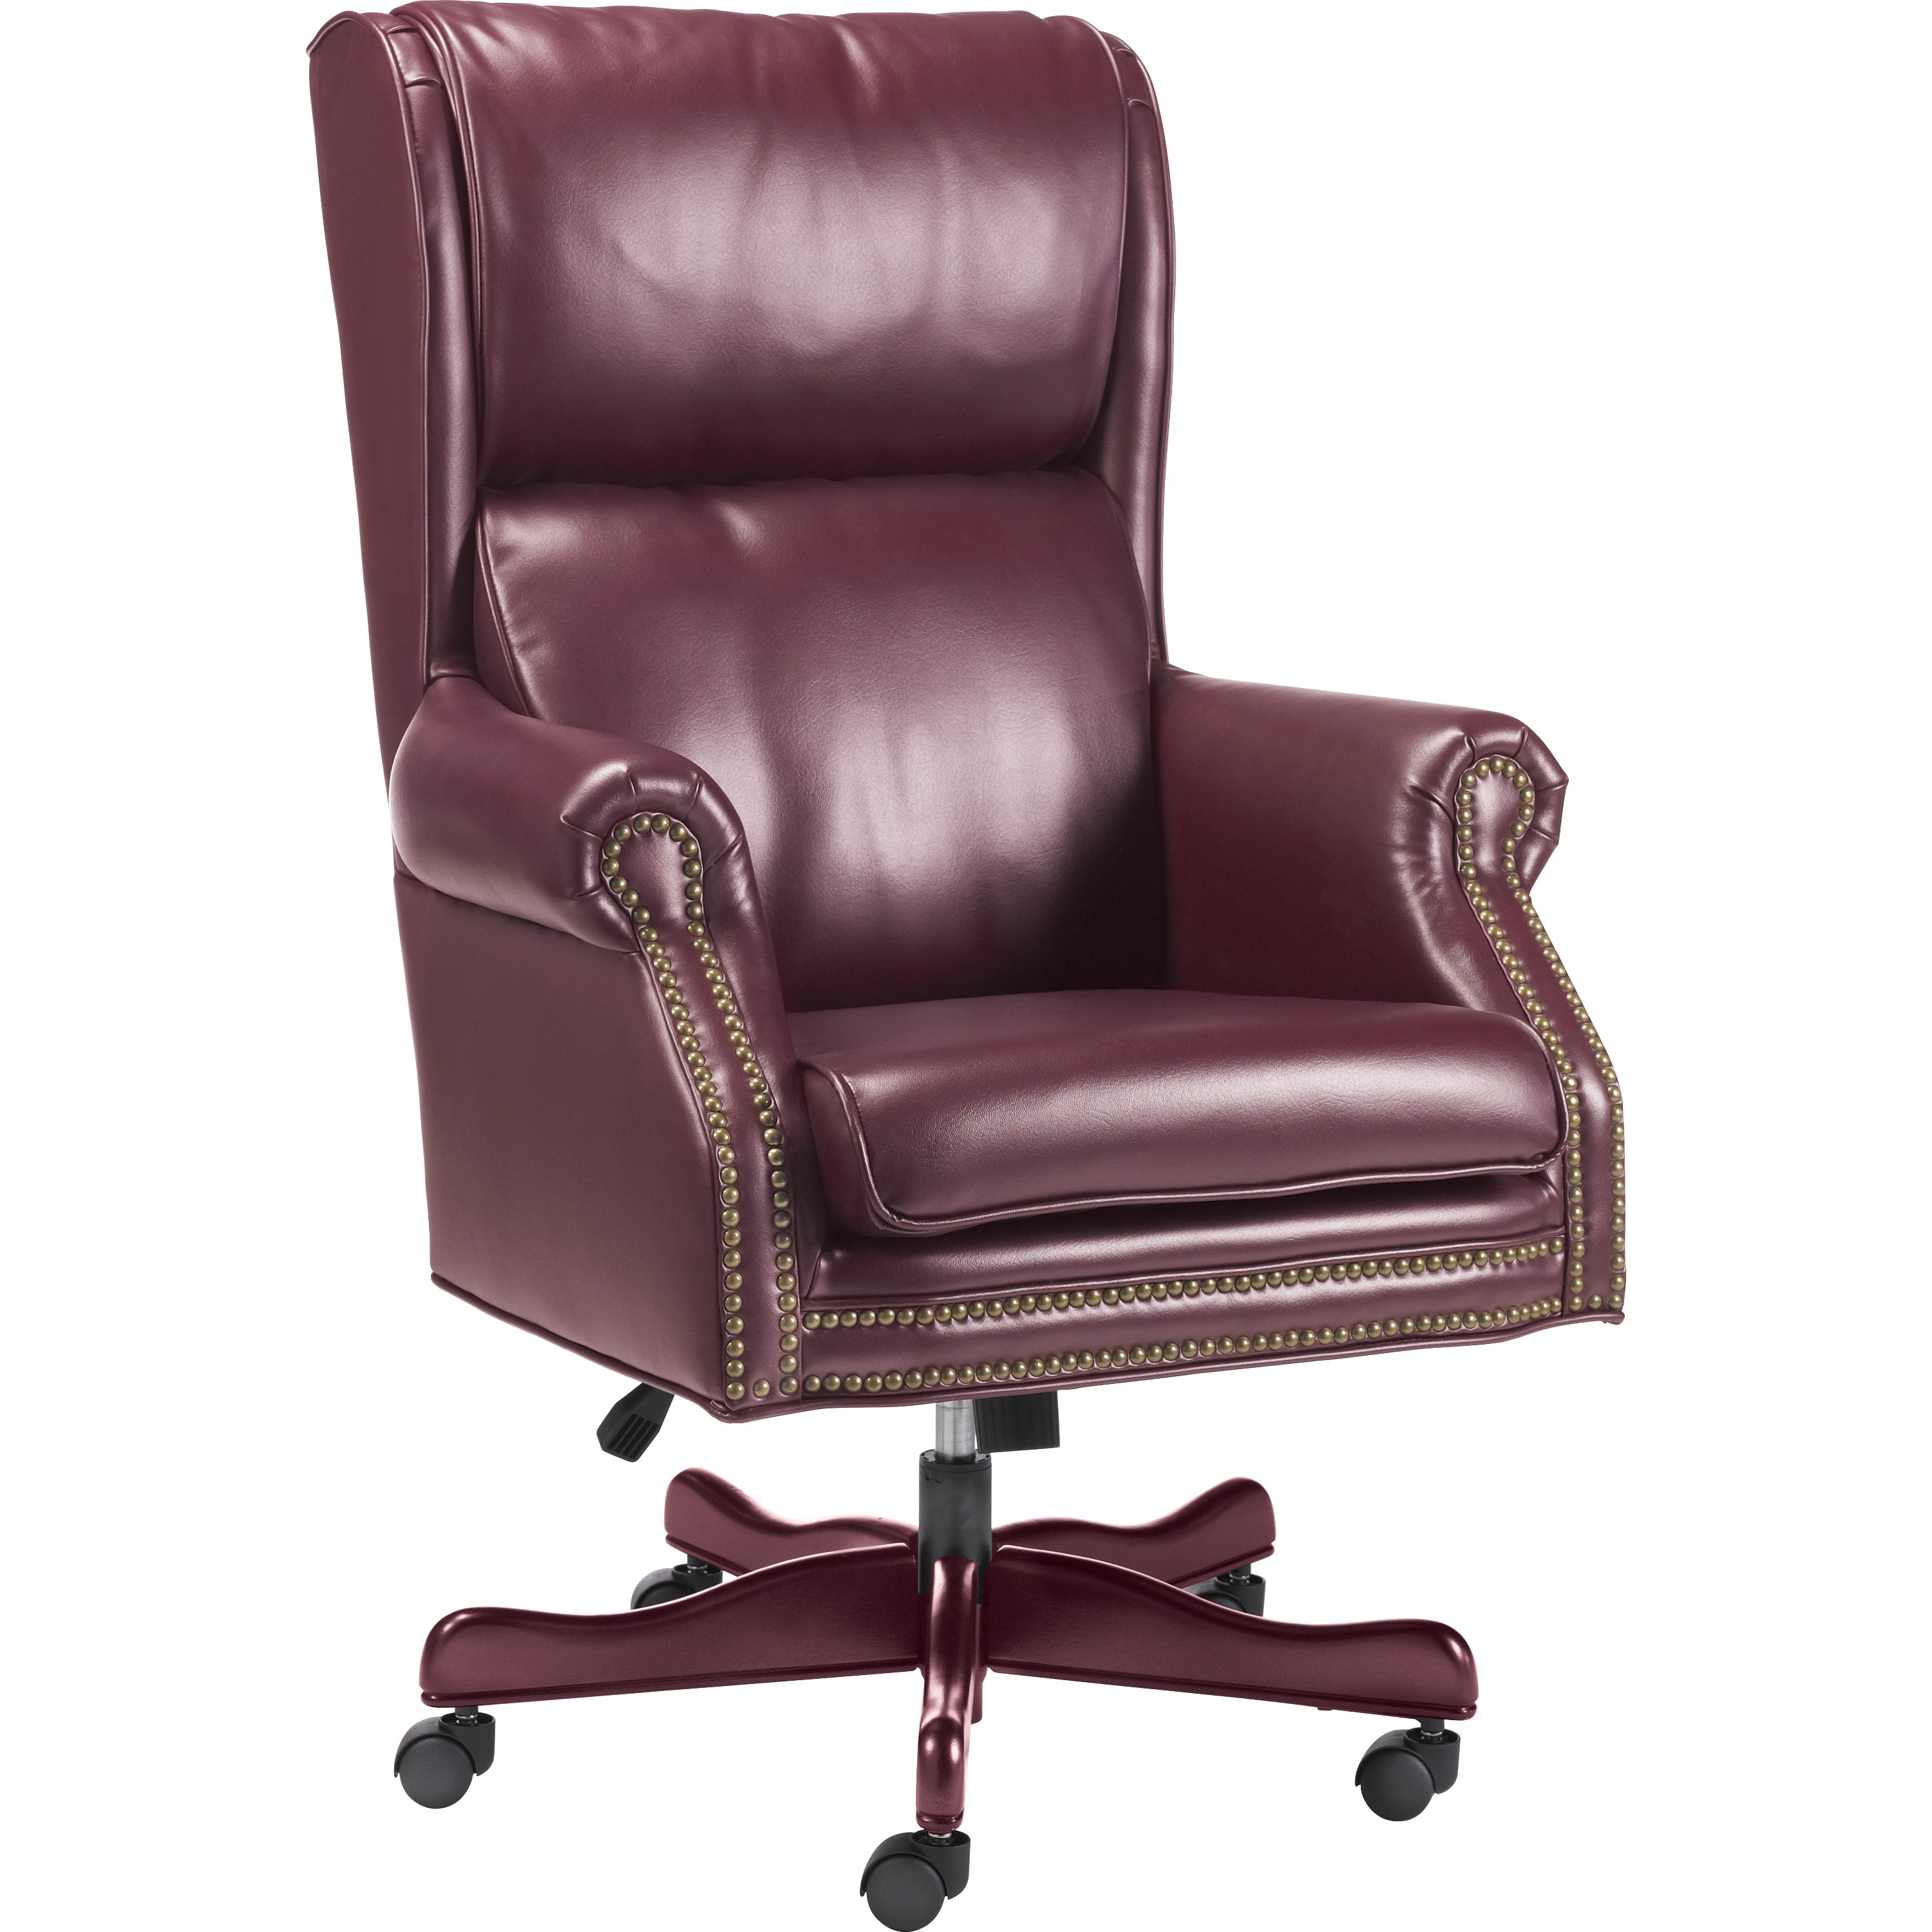 jerome's swivel chairs single couch chair cover executive office furniture lorell llr60602 traditional tilt 1 each